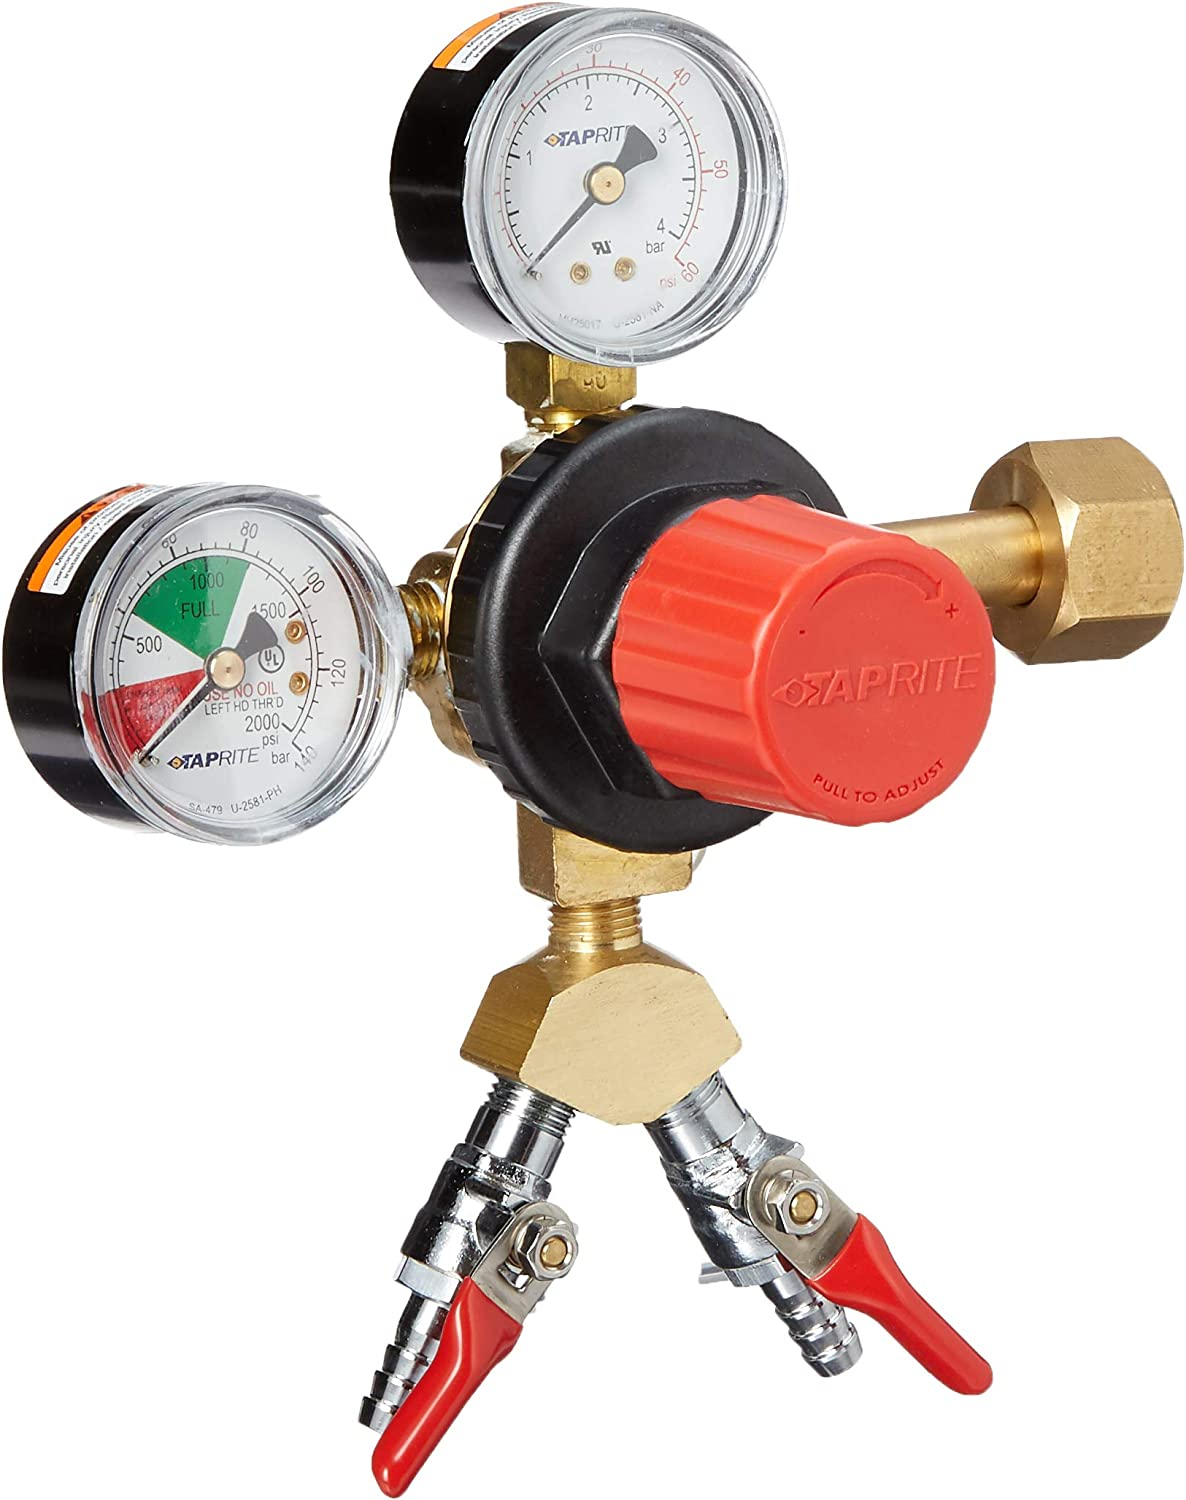 Taprite CGR263 2 Product High Volume Primary CO2 Regulator-Polycarbonate Body, Brass